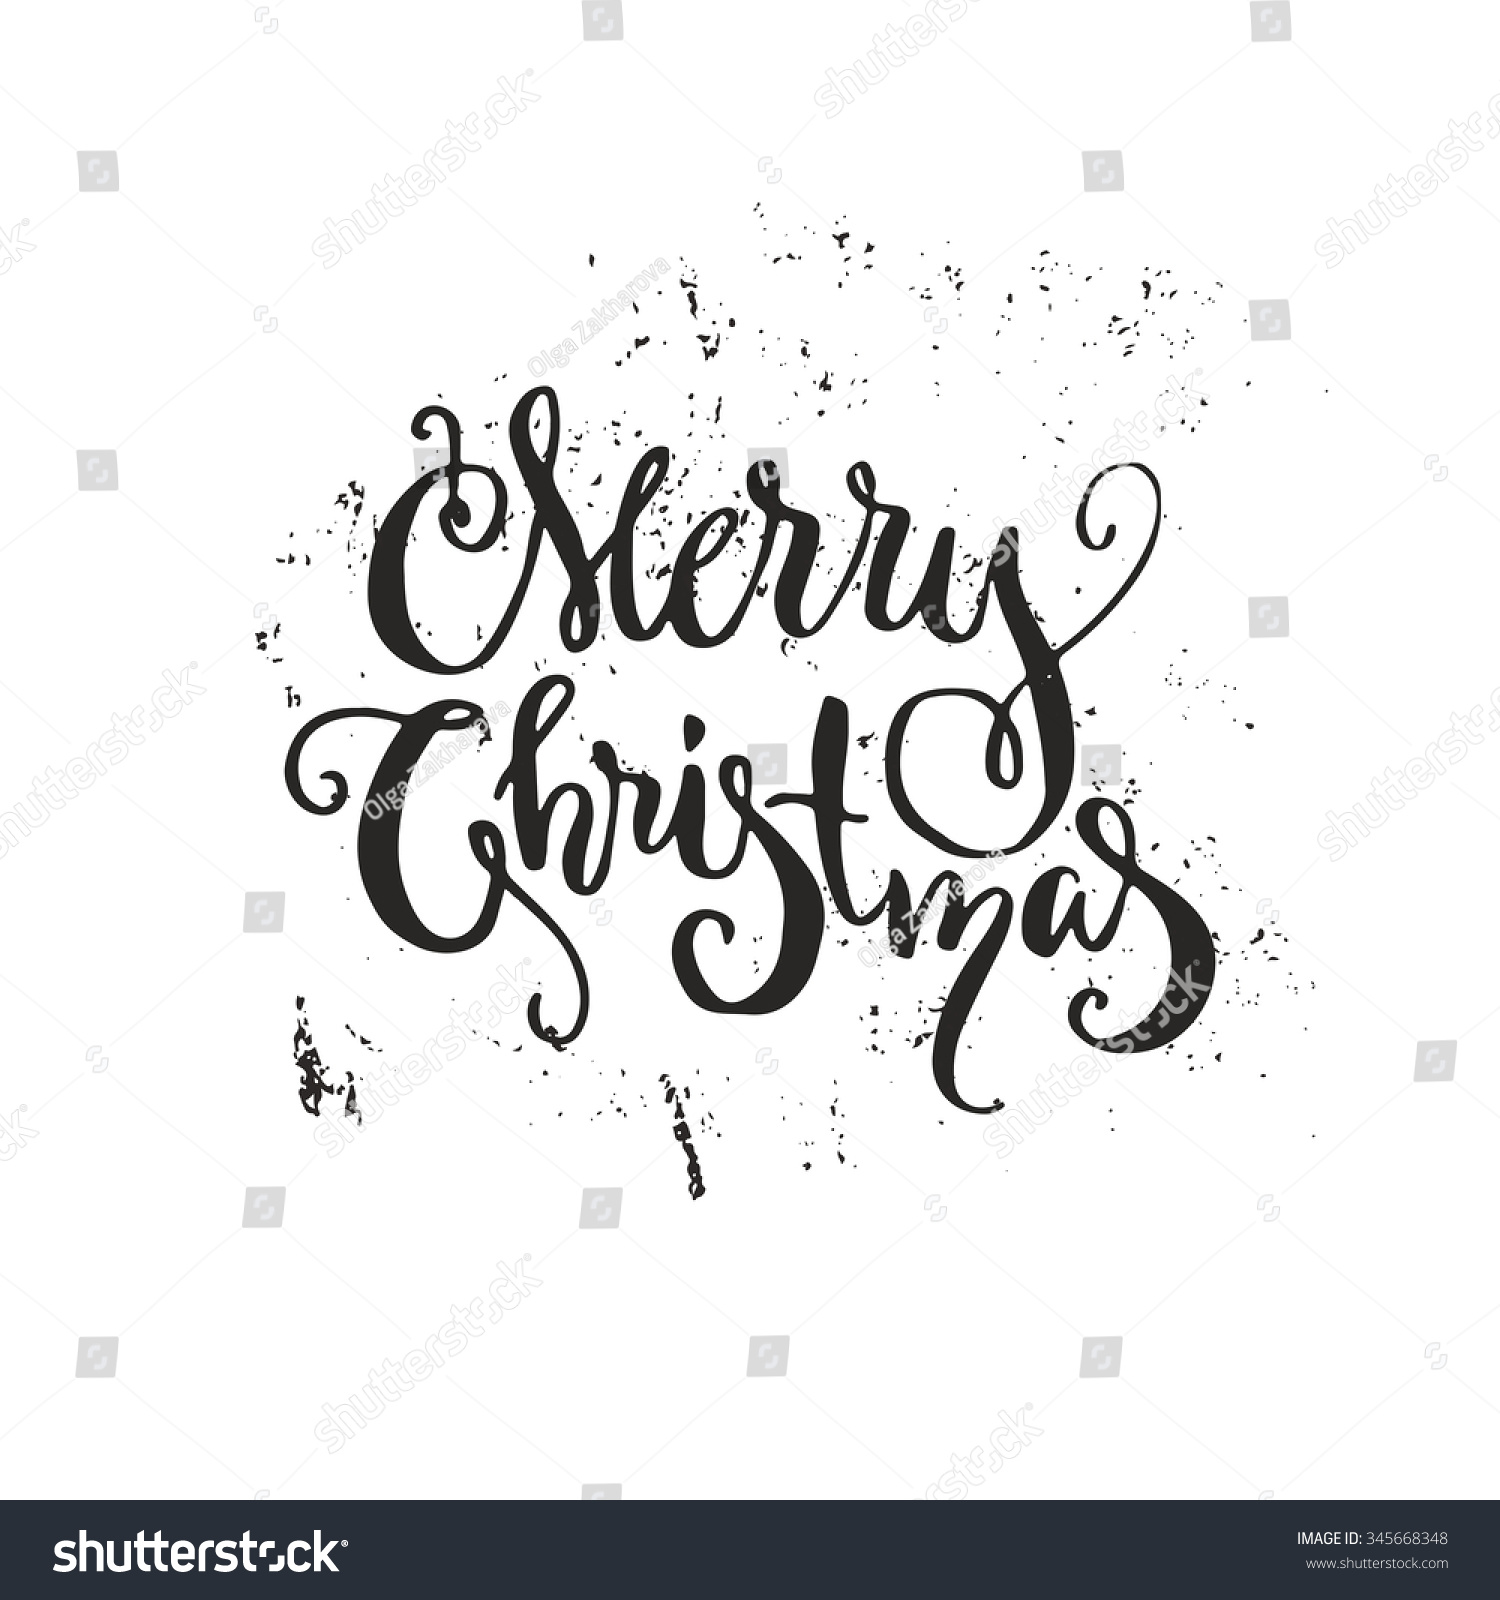 Vector Clipart Christmas Cards Photo Overlays Stock Photo Photo